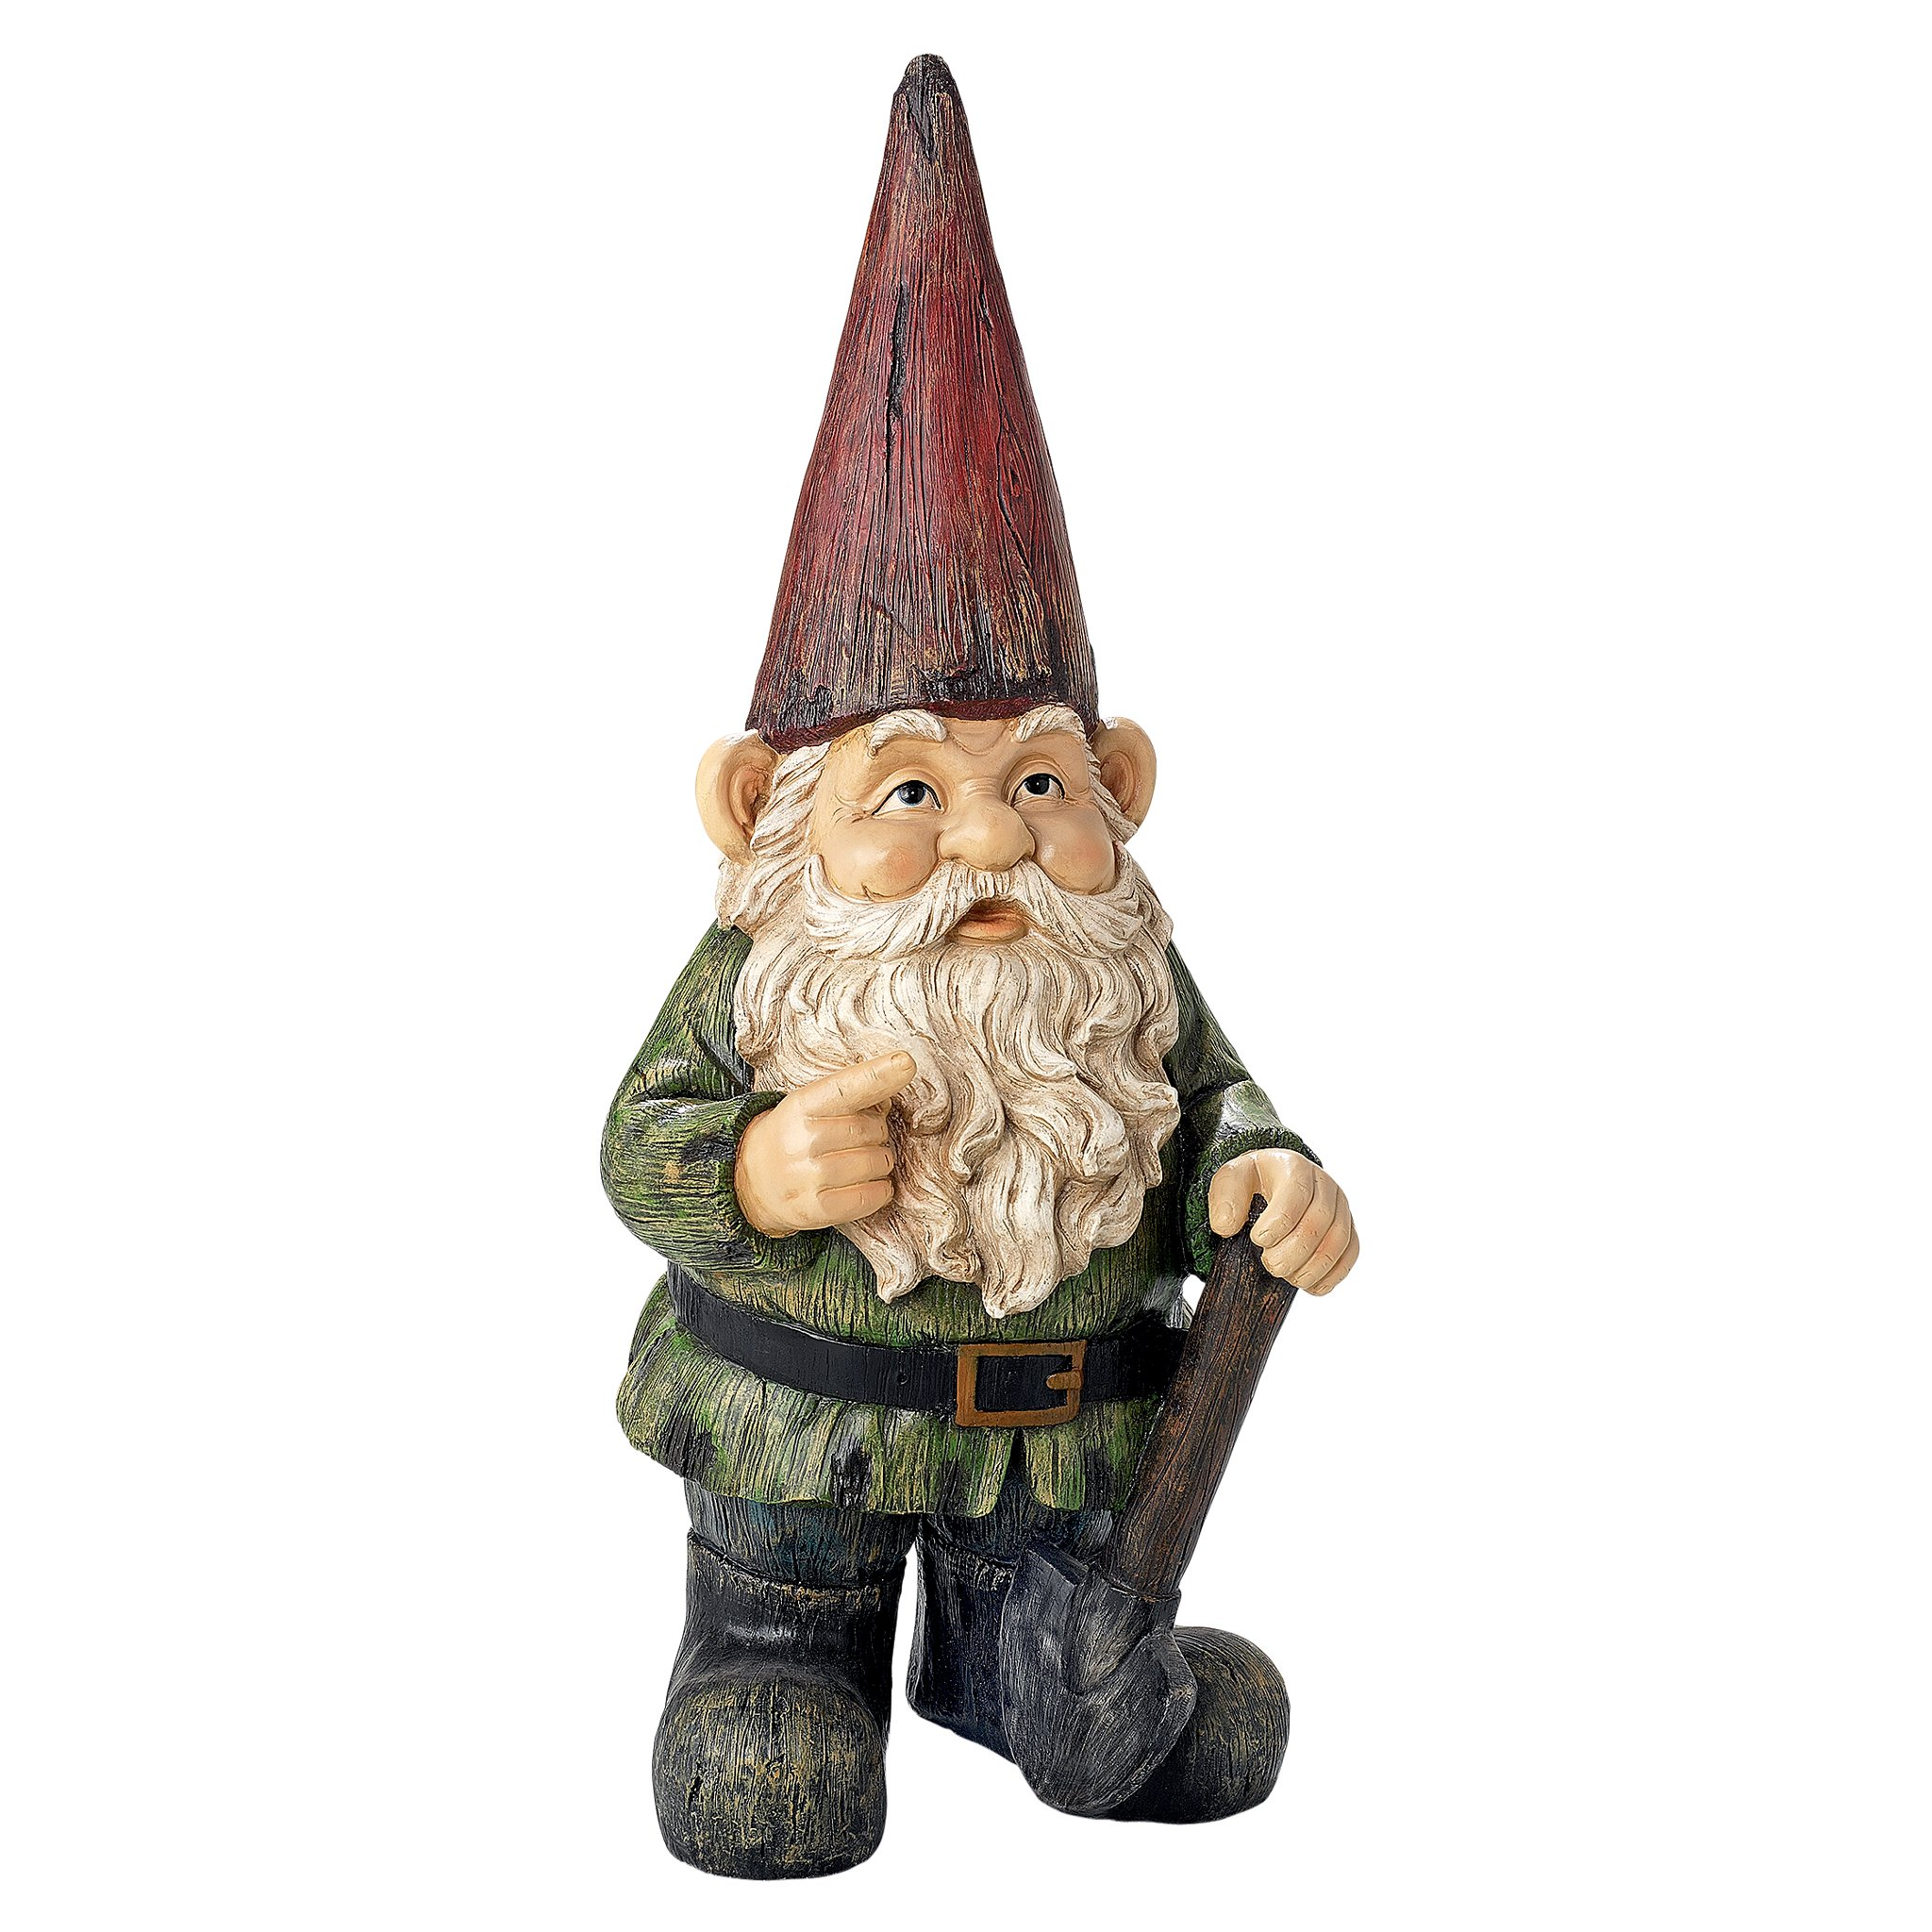 Garden Gnome Statue - Gottfried the Gigantic Gnome - Outdoor Garden Gnomes - Lawn Gnome